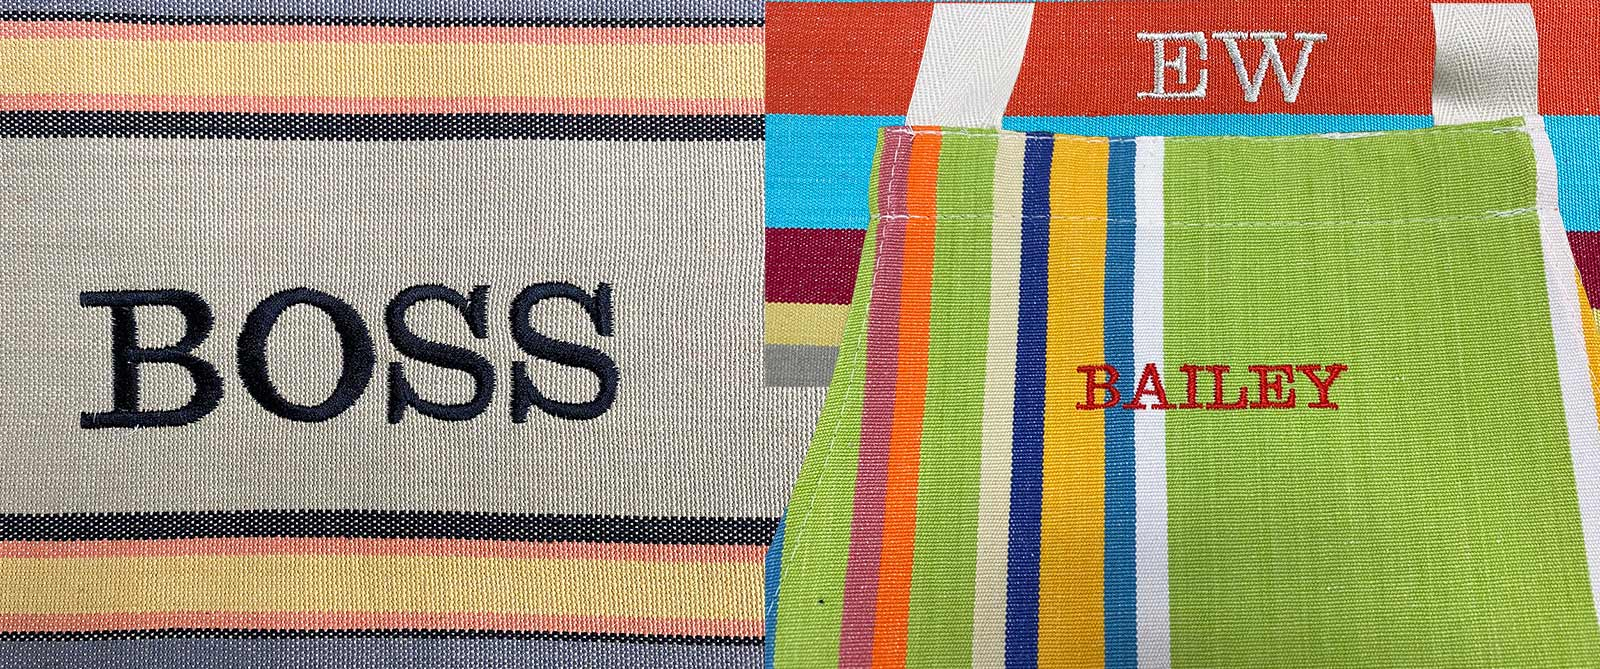 Personalise Your Stripes Company Products